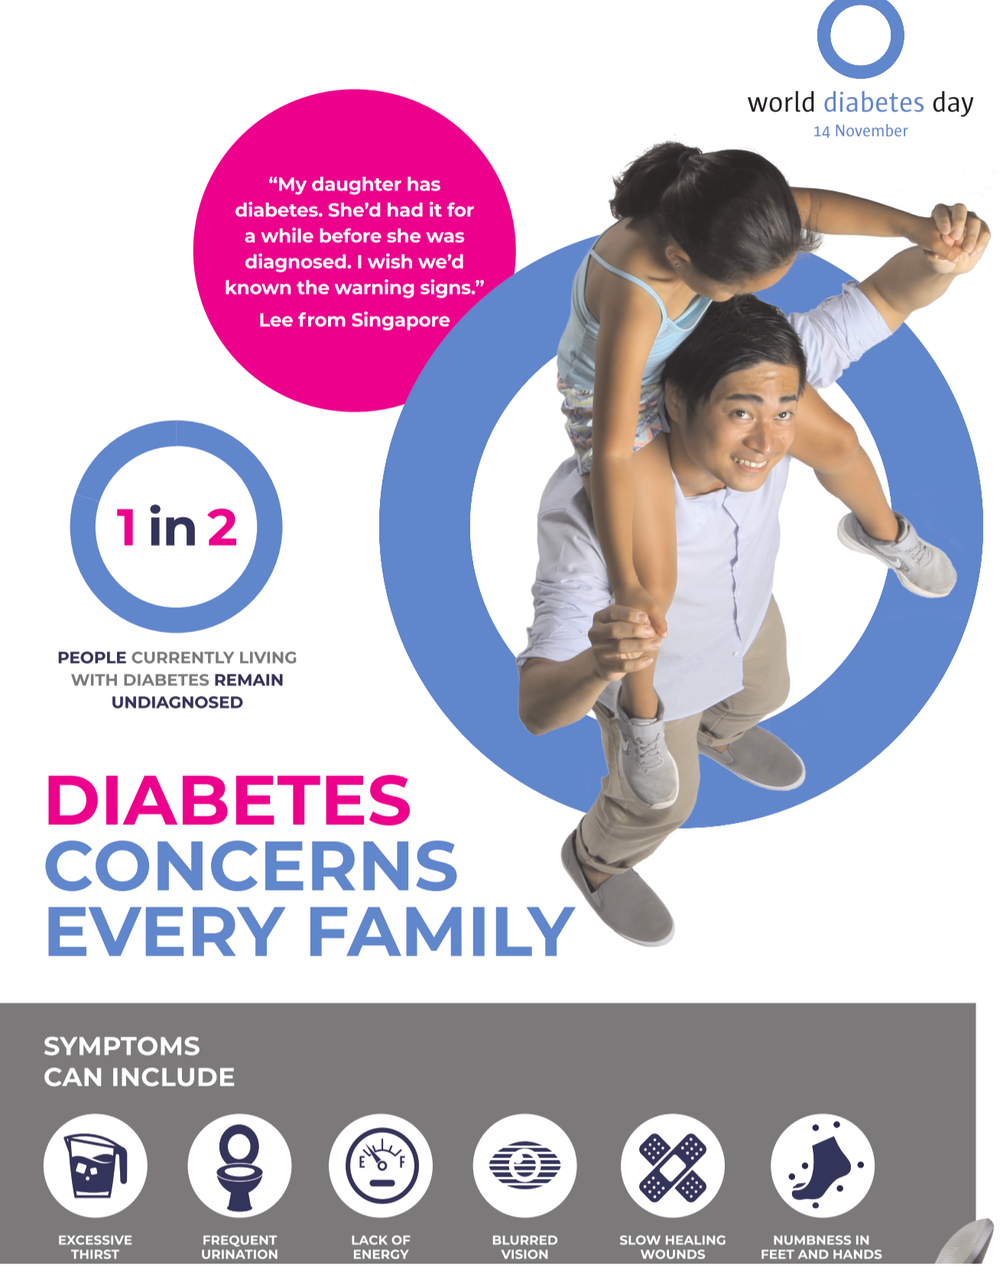 Warning Signs - This year the theme is Diabetes Concerns Every FamilyHere's some important information on warning signs from #worlddiabetesday